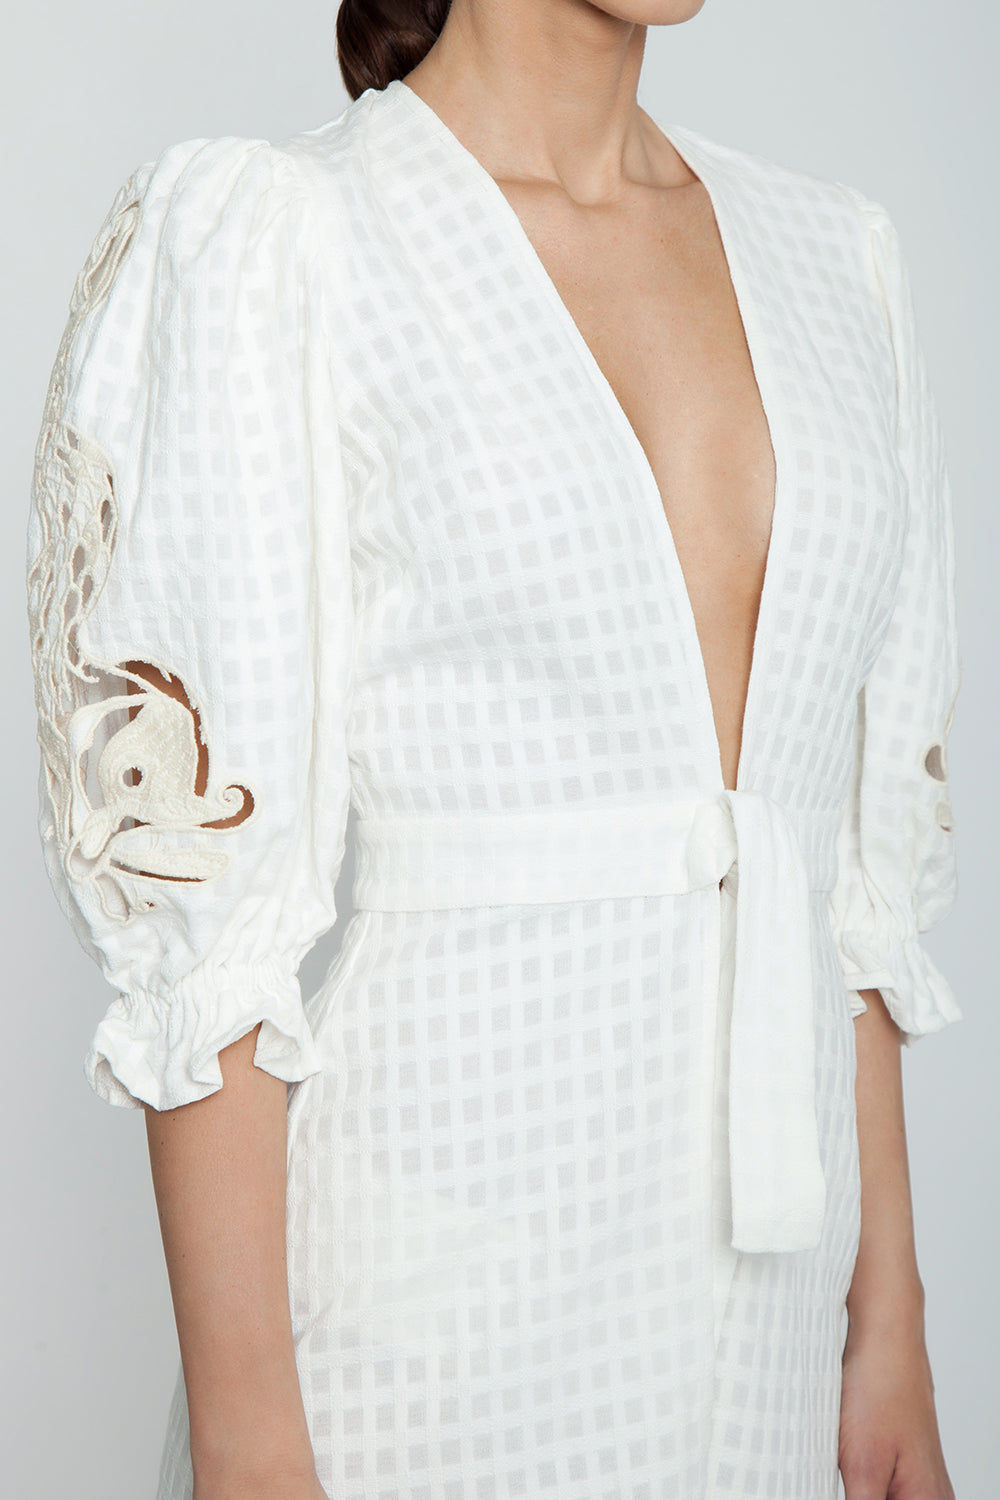 ADRIANA DEGREAS Embroidery Romper - Off White Romper | Off White| Adriana Degreas Embroidery Romper - Off White  Long sleeve romper Plunging neckline Embroidered long sleeve detail  Front tie detail  Detail View